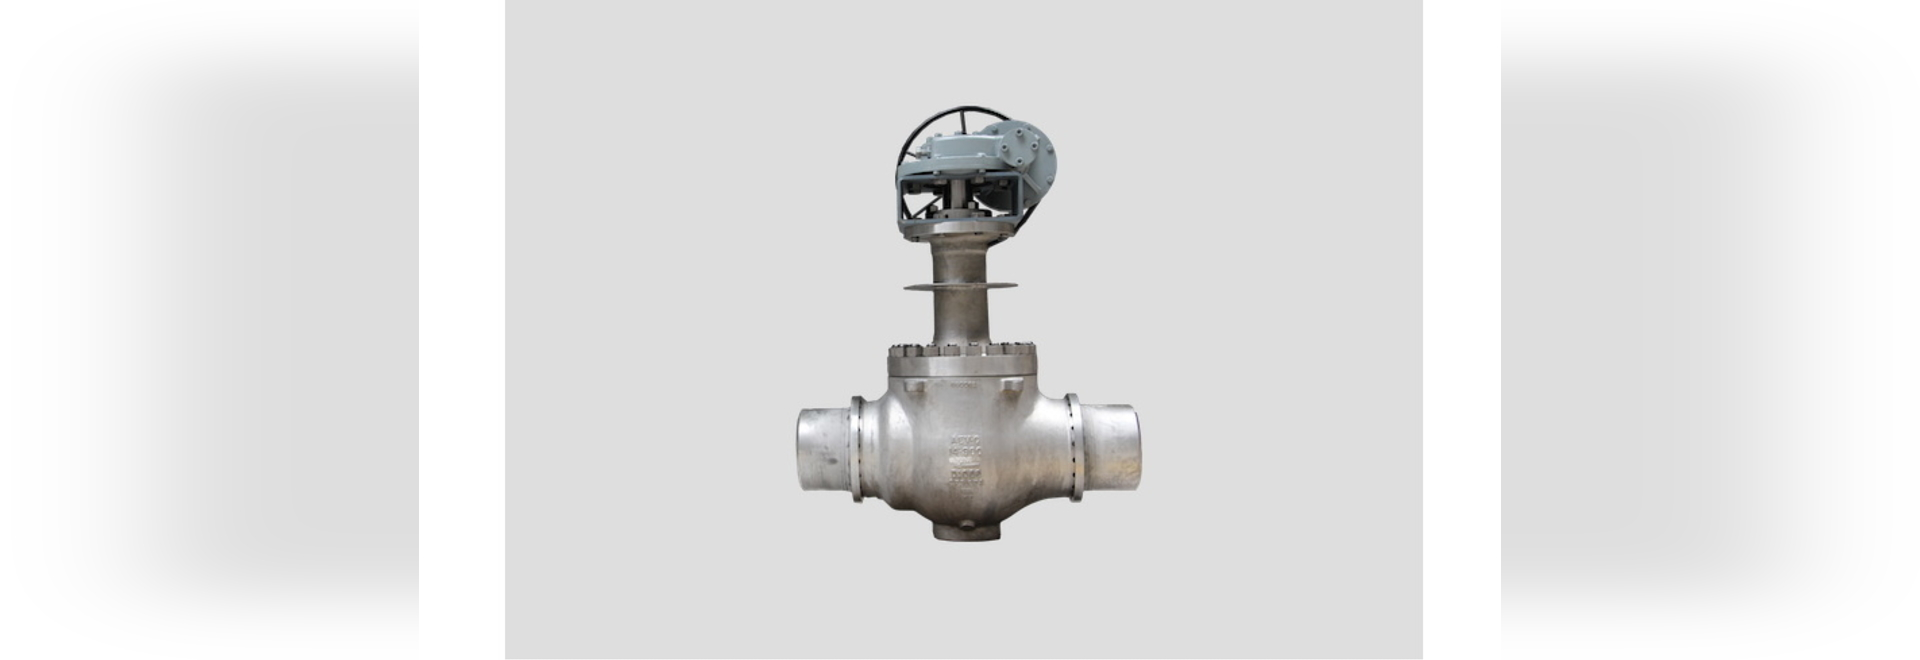 A.E.V.'s cryogenic ball valve was designed from the ground up using modern technology incorporated in the valve to provide its users a safer option when choosing critical valves for their process.